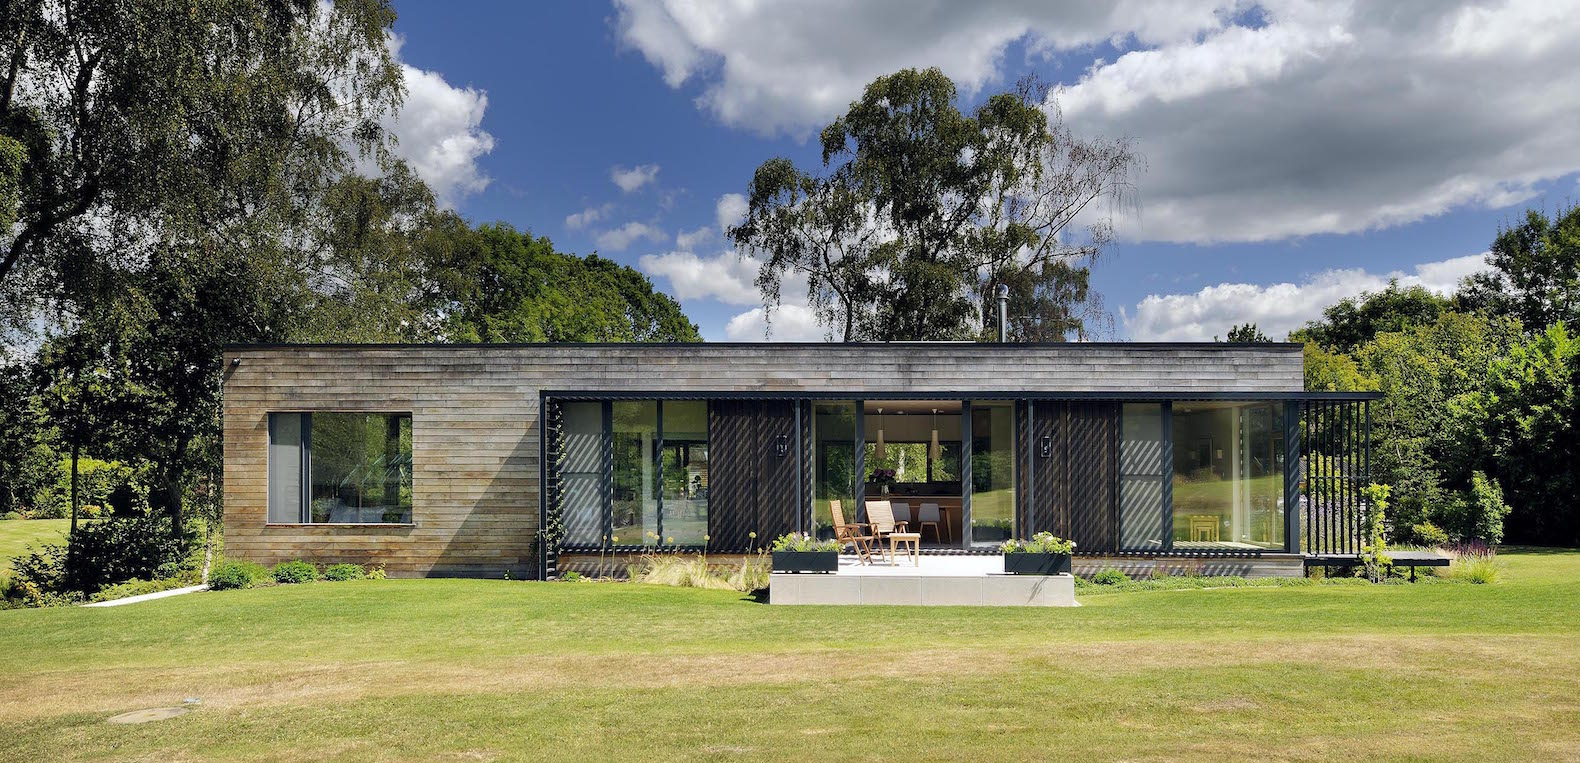 What Is A Prefab Home prefab house | inhabitat - green design, innovation, architecture